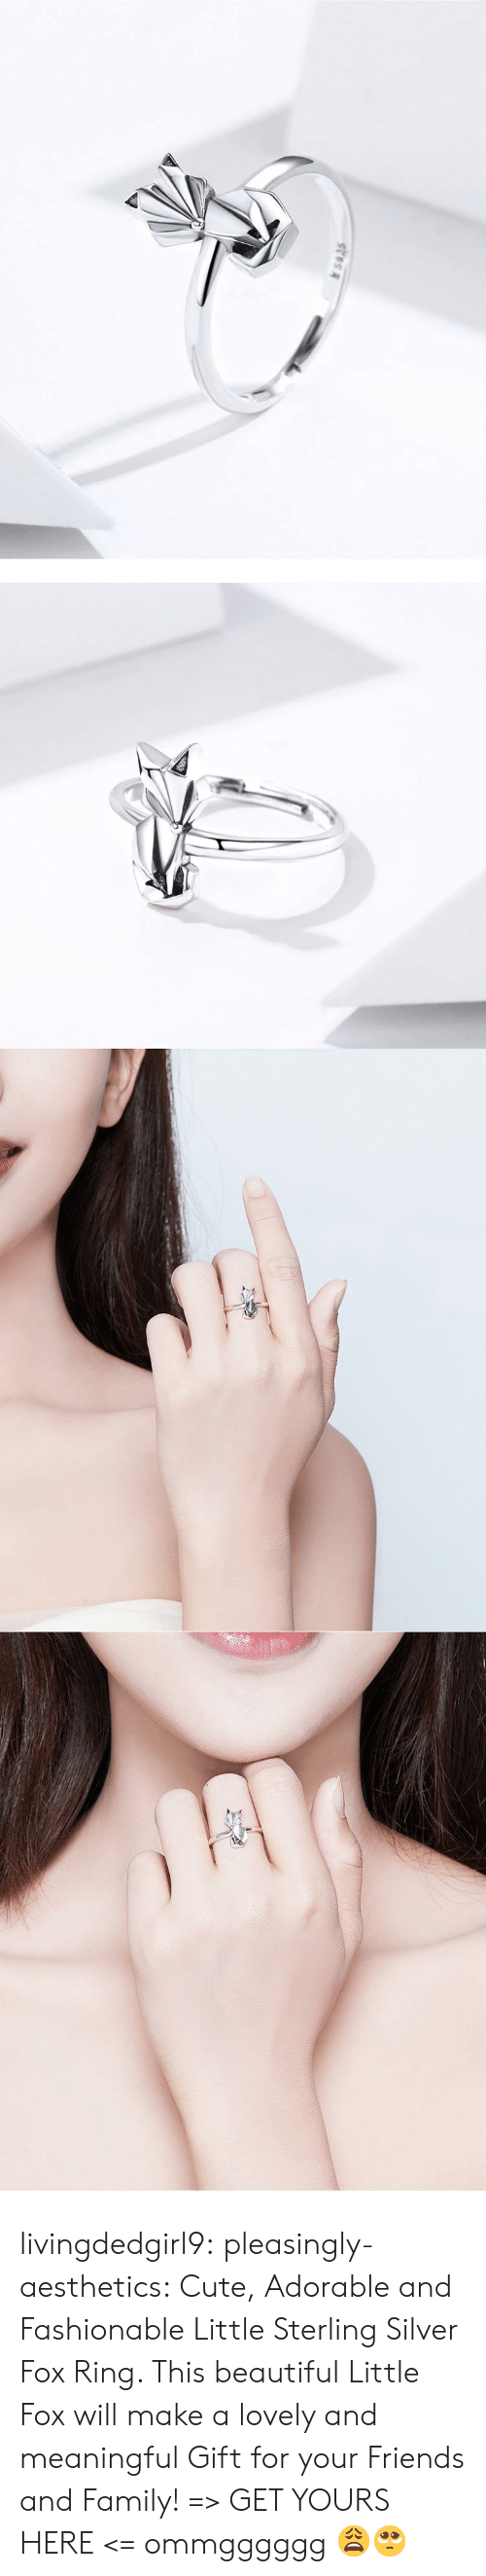 fashionable: s935 livingdedgirl9:  pleasingly-aesthetics: Cute, Adorable and Fashionable Little Sterling Silver Fox Ring. This beautiful Little Fox will make a lovely and meaningful Gift for your Friends and Family! => GET YOURS HERE <=   ommgggggg 😩🥺